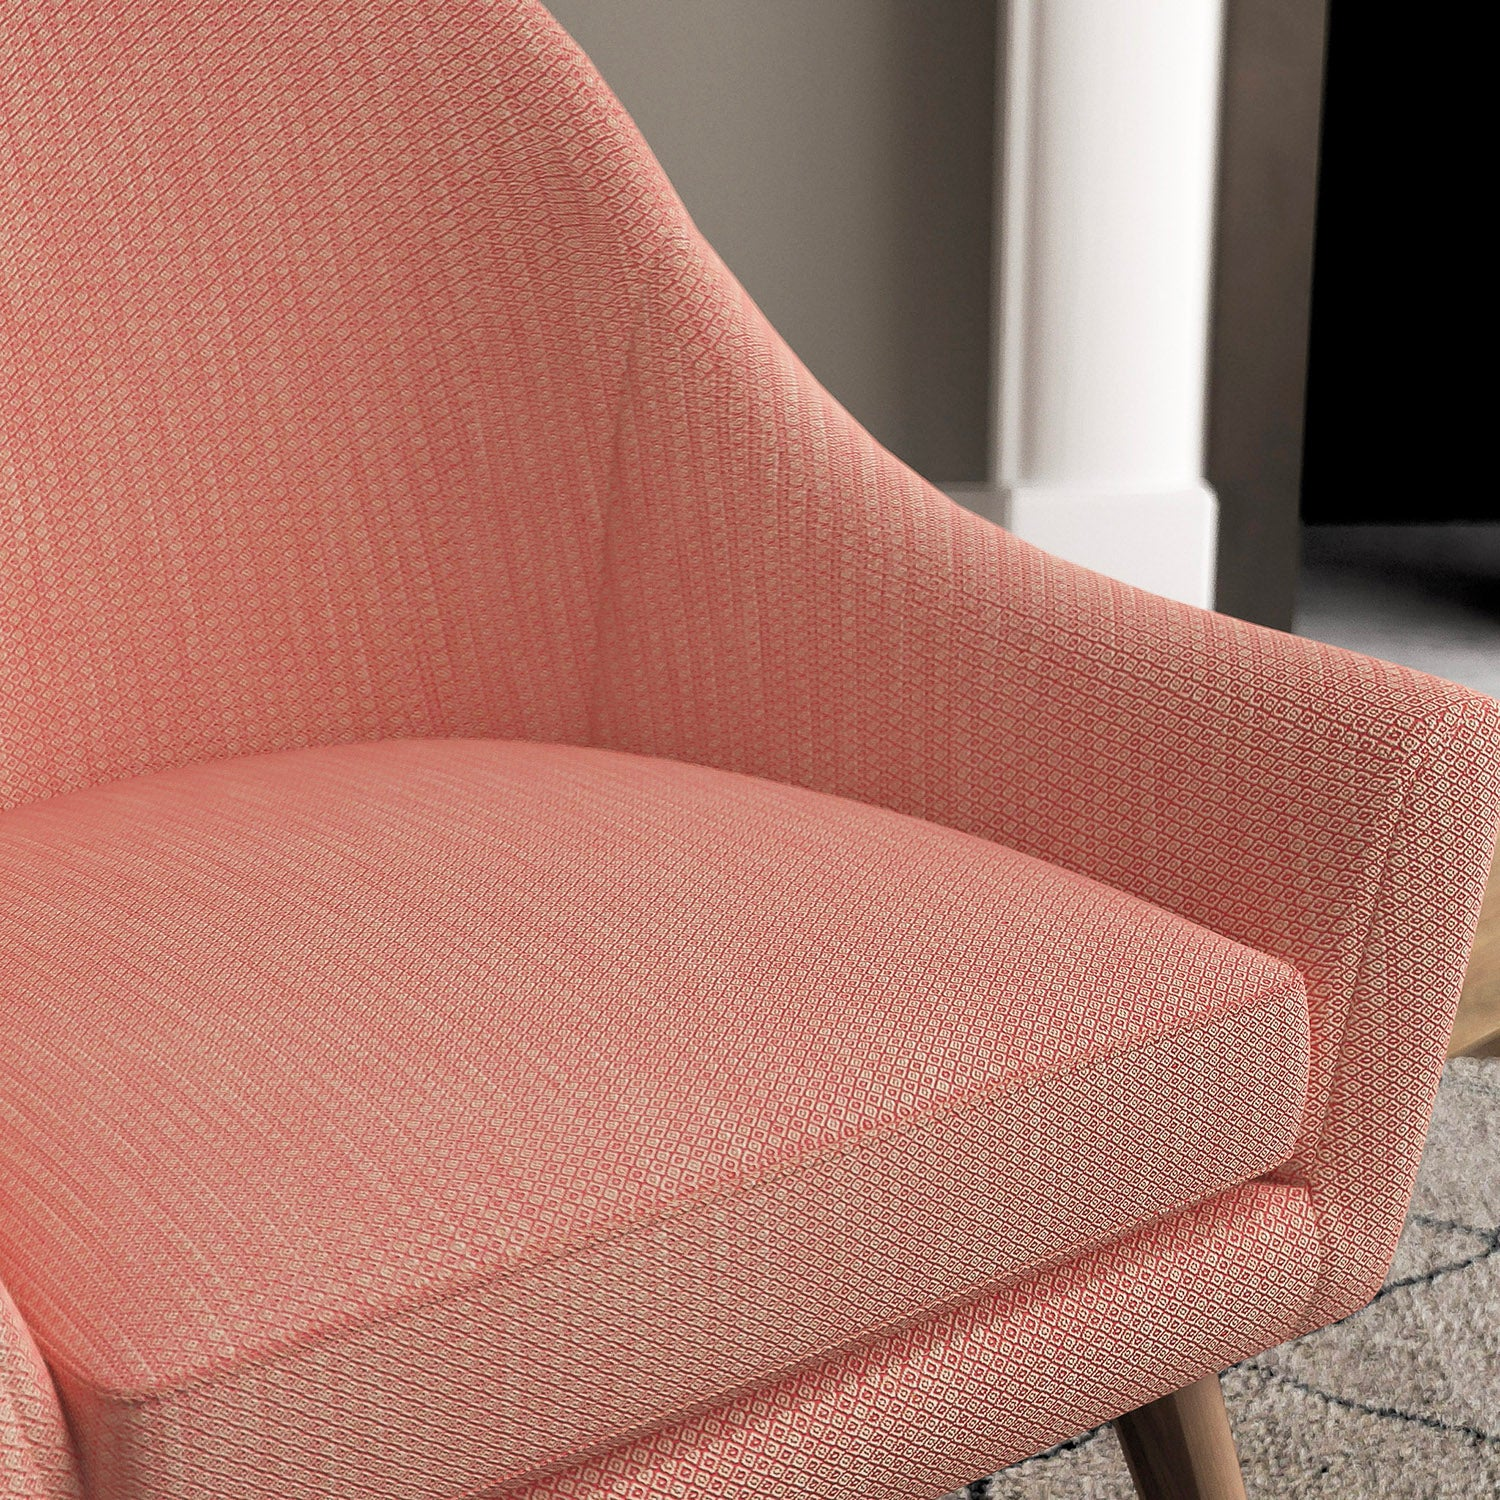 Chair with a bright pink and neutral upholstery fabric with a small diamond weave fabric